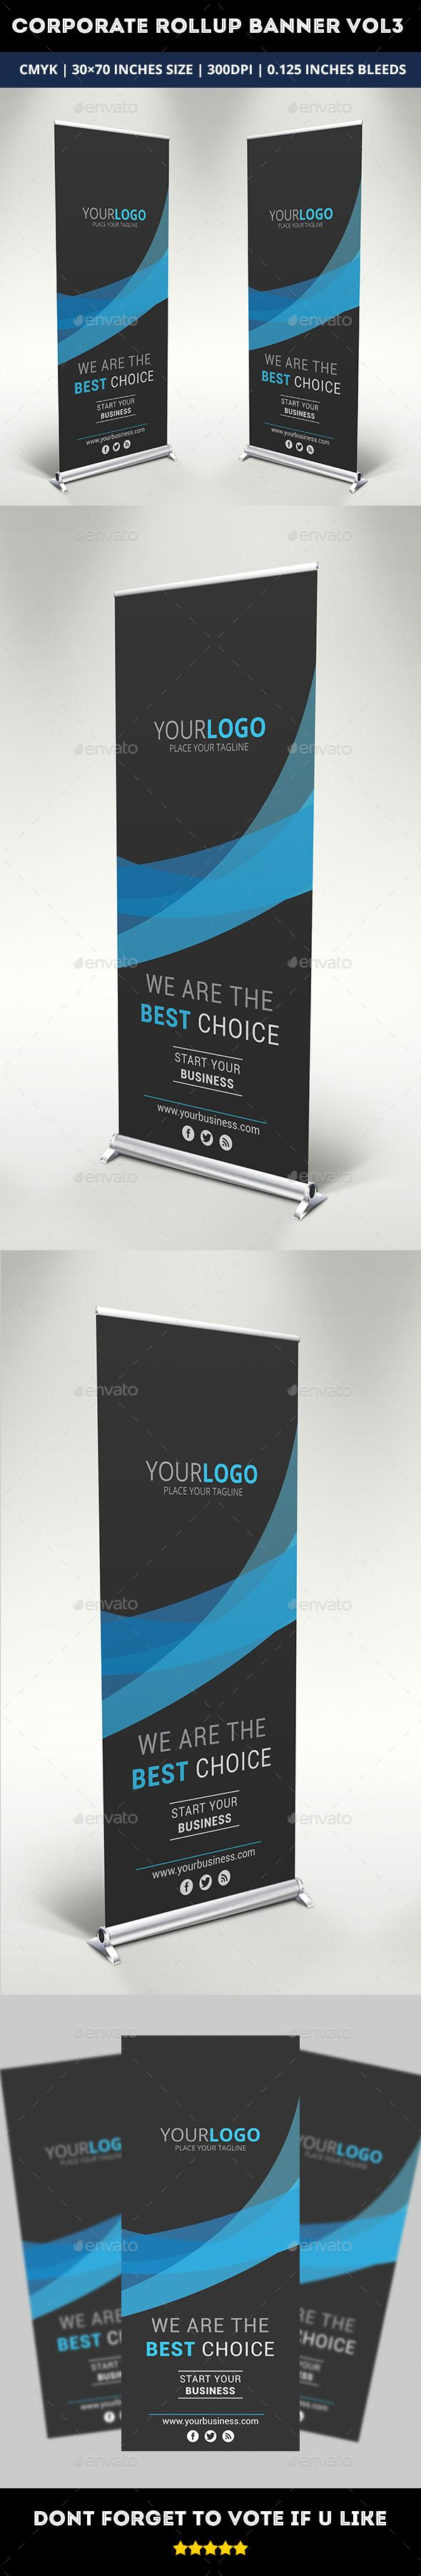 Corporate Rollup Banner Template #design Download: http://graphicriver.net/item/corporate-rollup-banner-vol-3/10521930?ref=ksioks